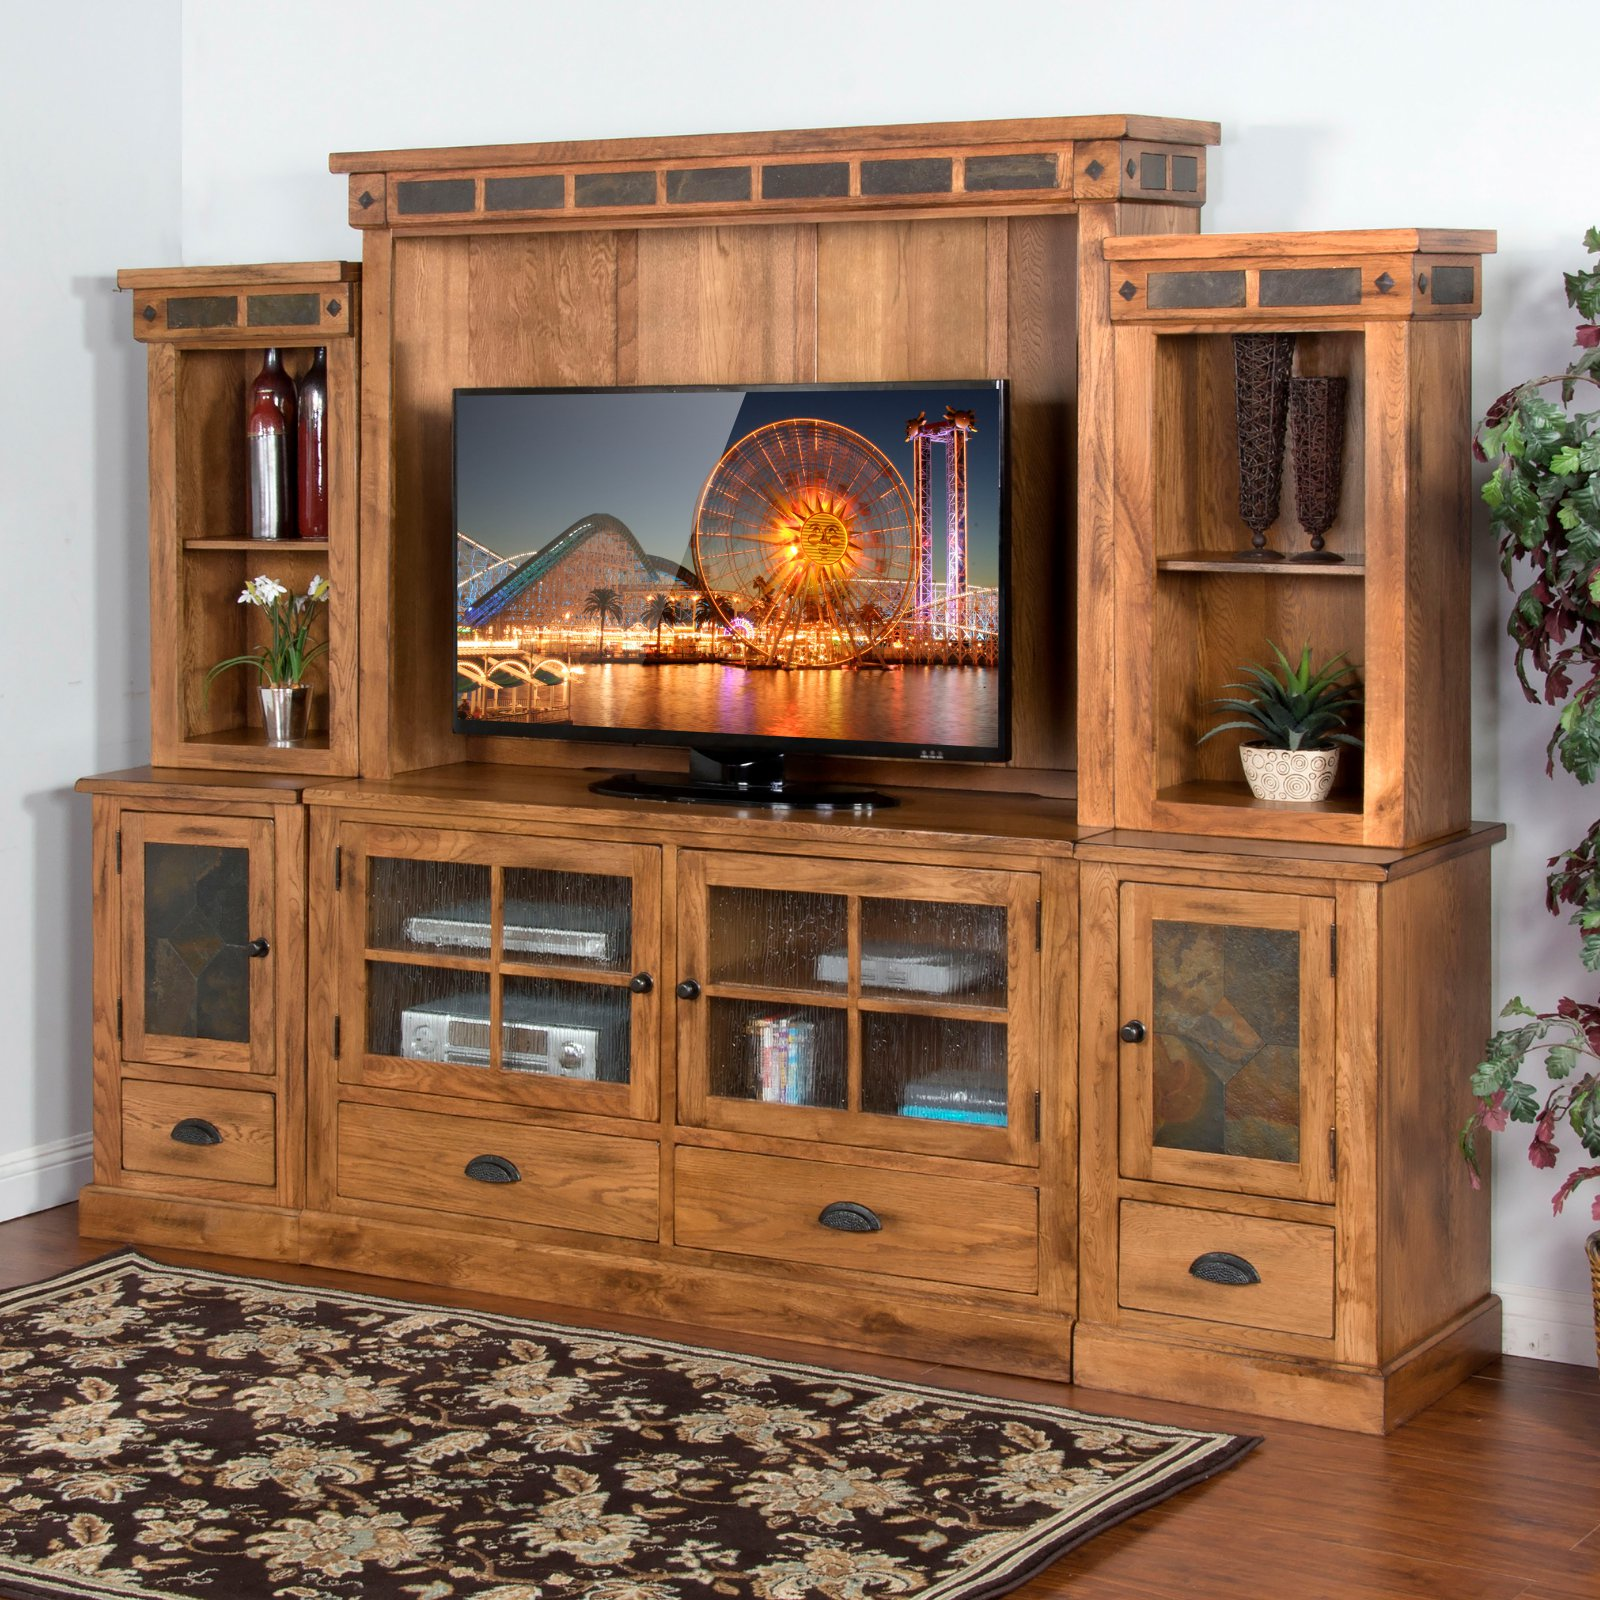 Sunny Designs Sedona 63 in. Entertainment Center - Rustic Oak